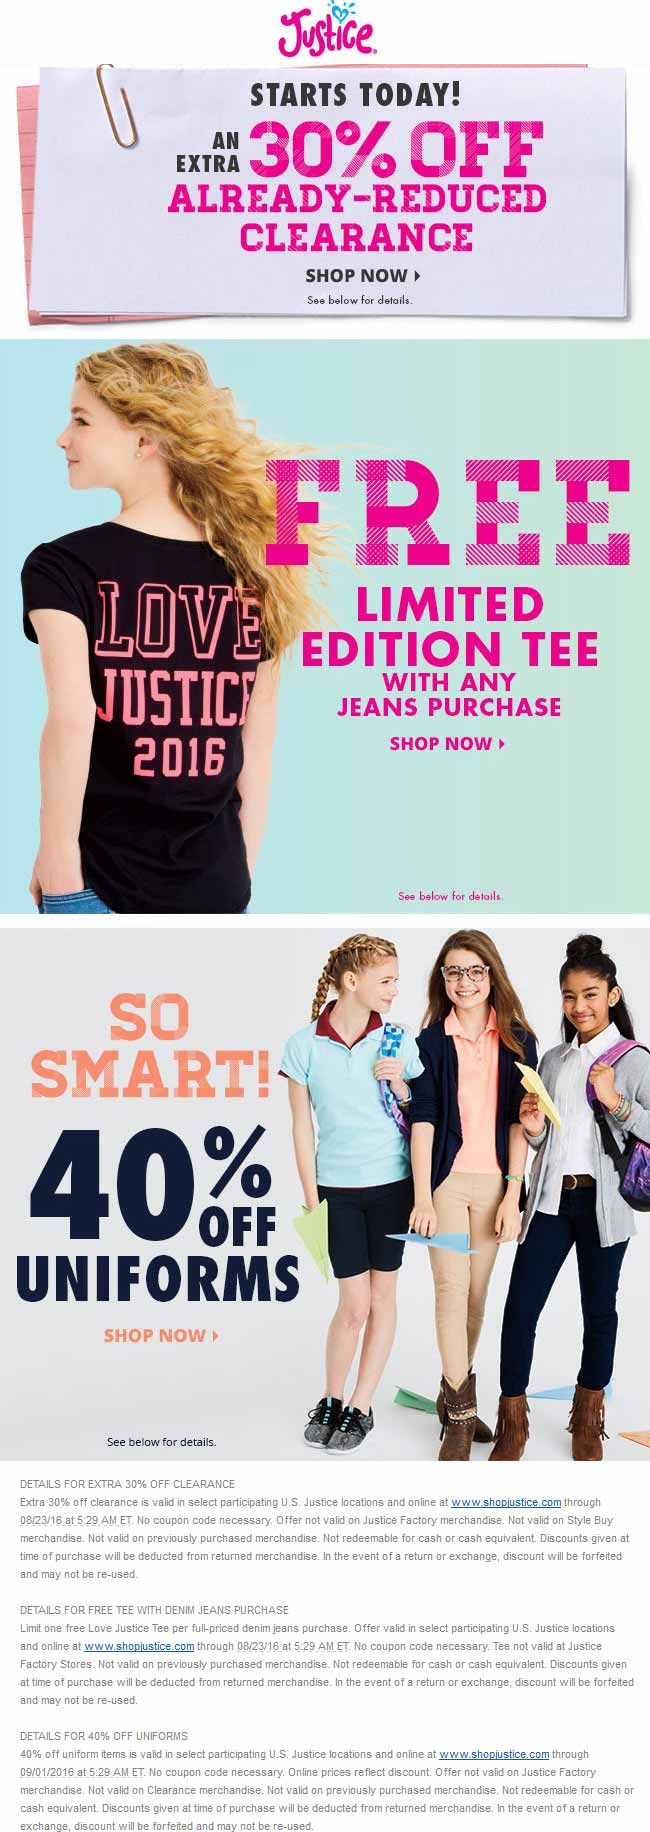 Justice Coupon March 2017 Extra 30% off clearance, 40% off uniforms, free shirt with jeans at Justice, ditto online